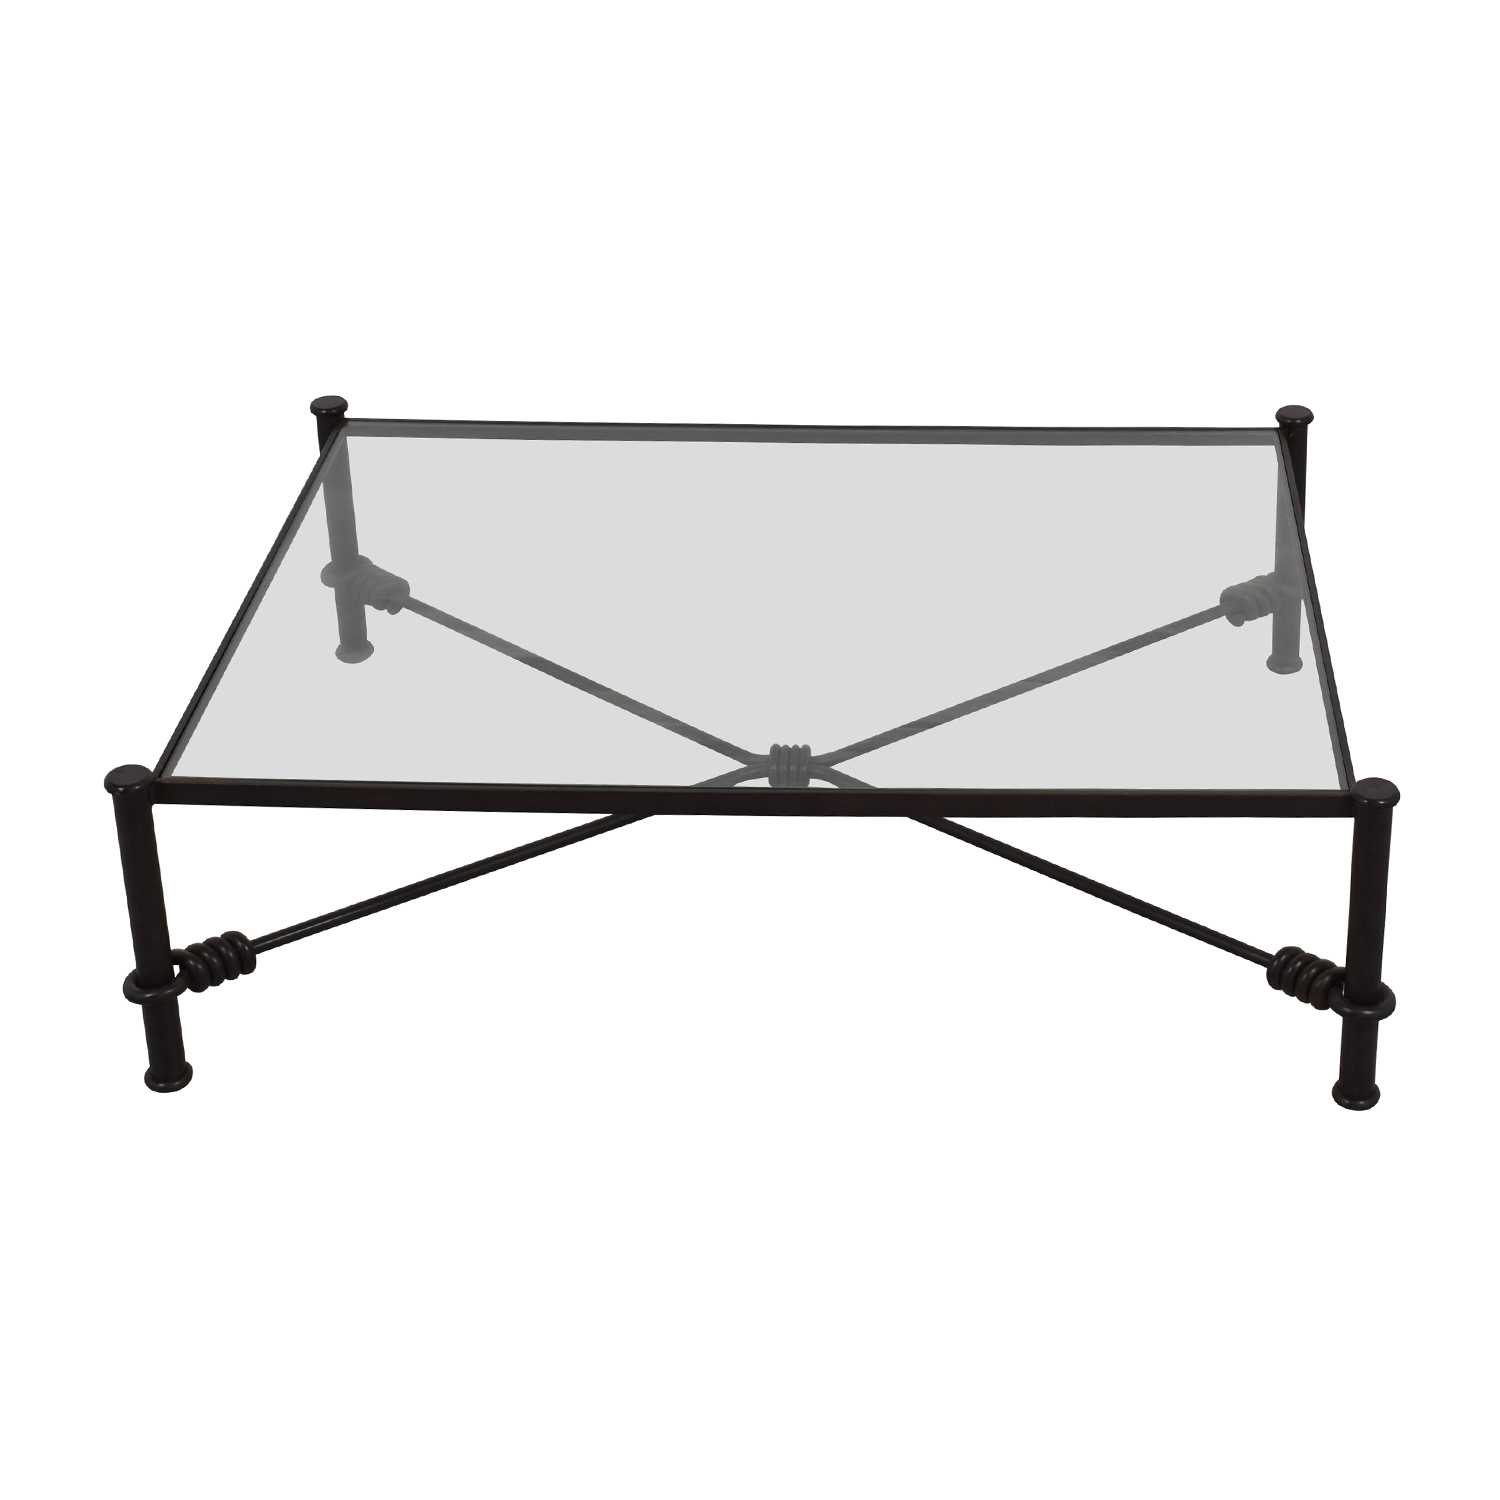 87% OFF Black Wrought Iron Glass Coffee Table Tables